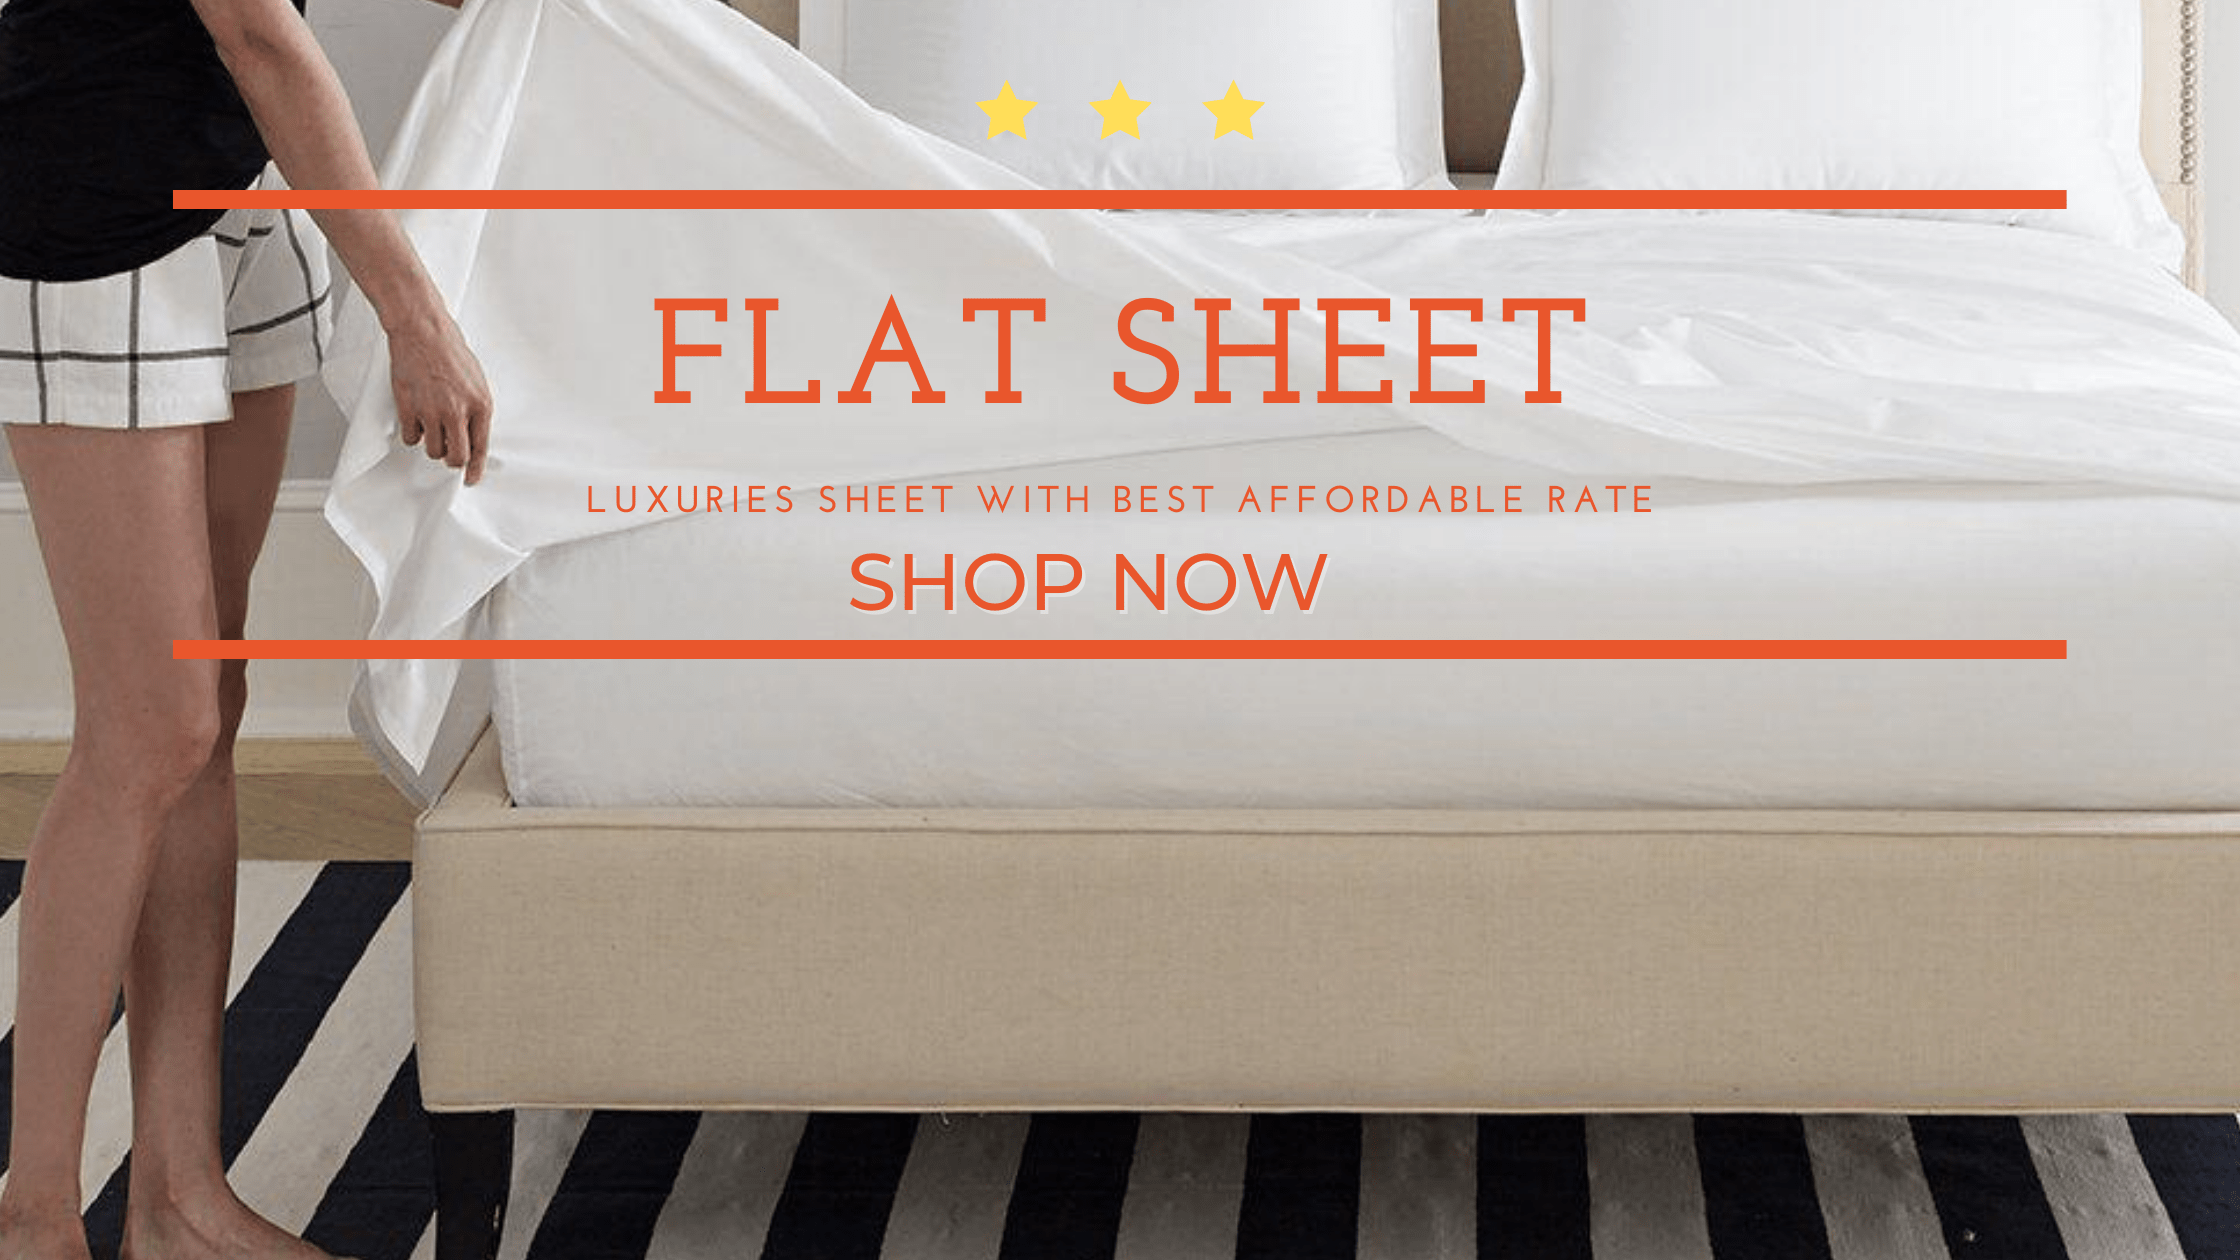 The Best Flat Sheet For Bed 2020: Luxuries, Breathable & Affordable